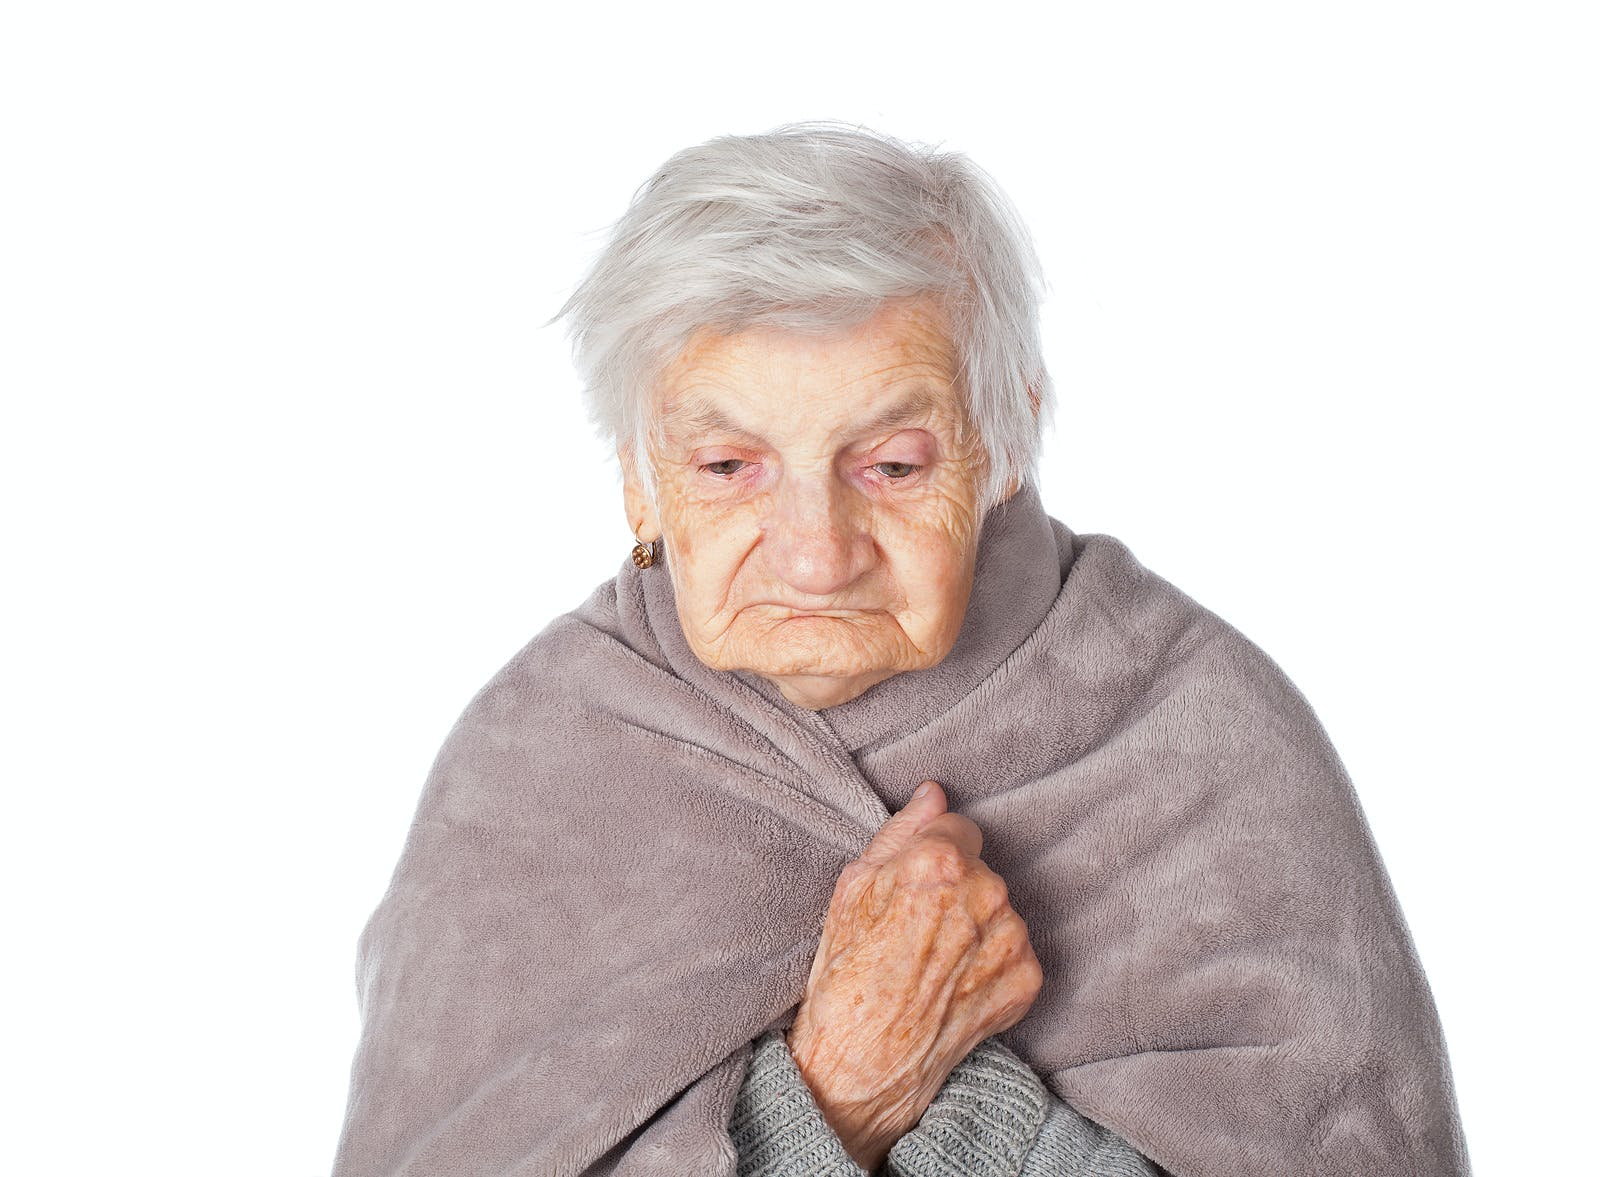 Disabled elderly female with a grey blanket on isolated background flu symptoms